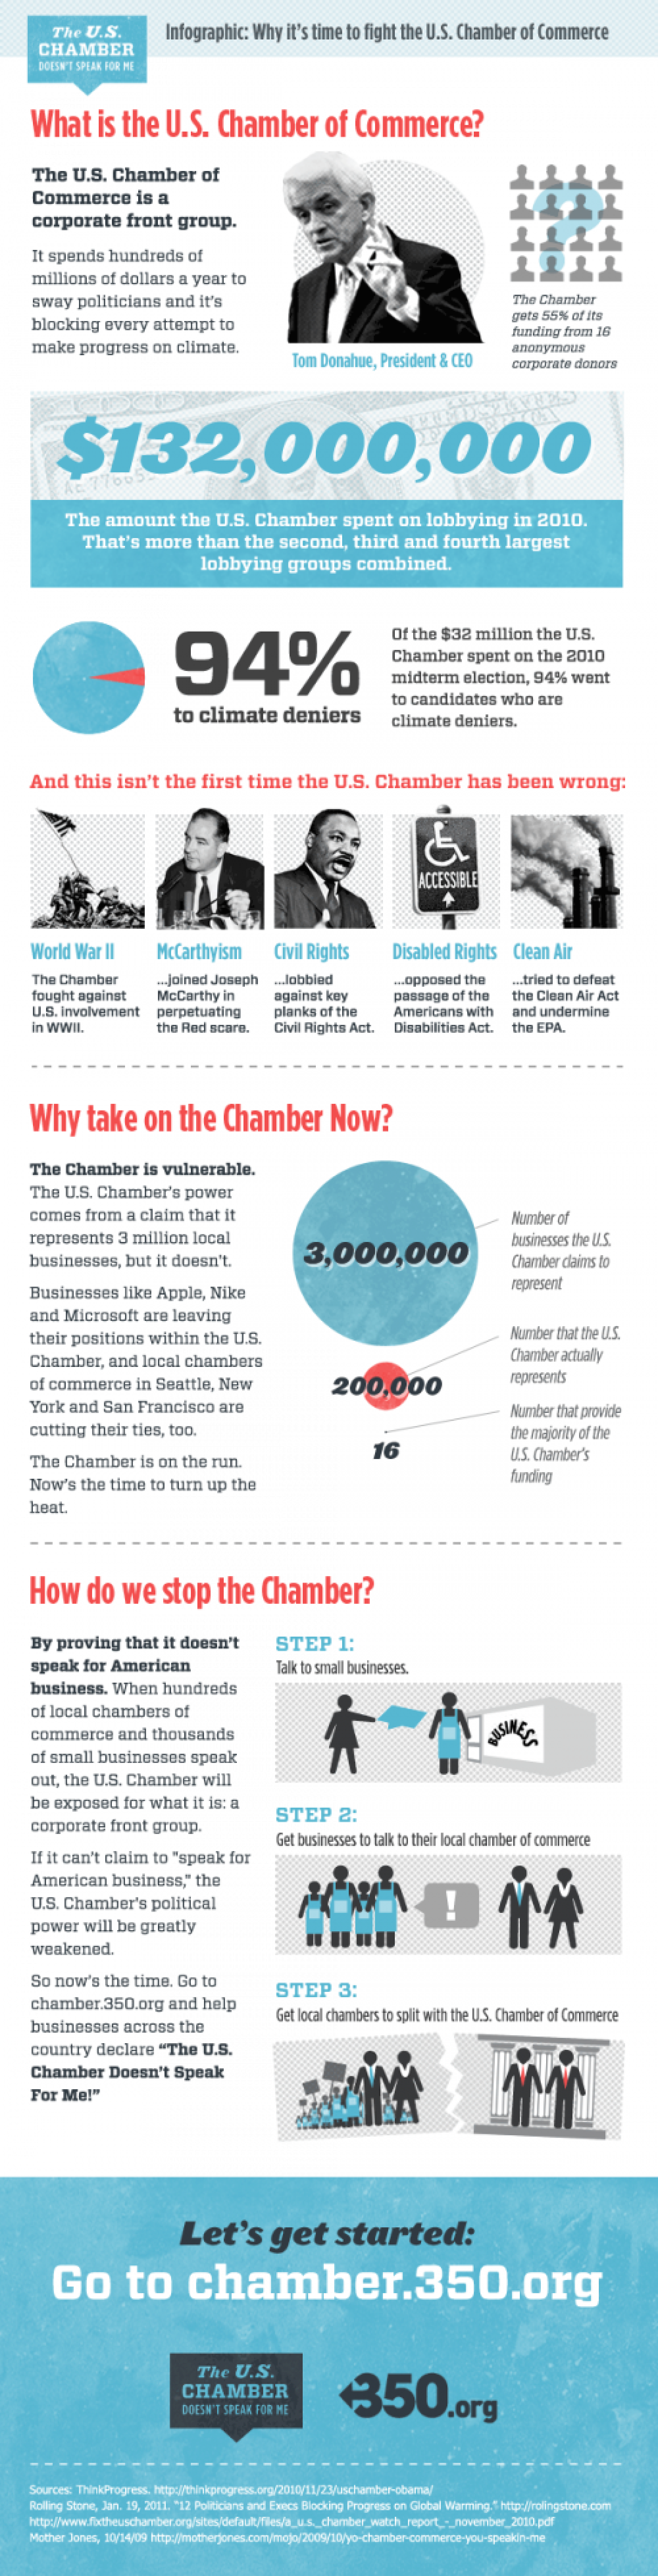 Why It's Time to Fight the Chamber of Commerce Infographic